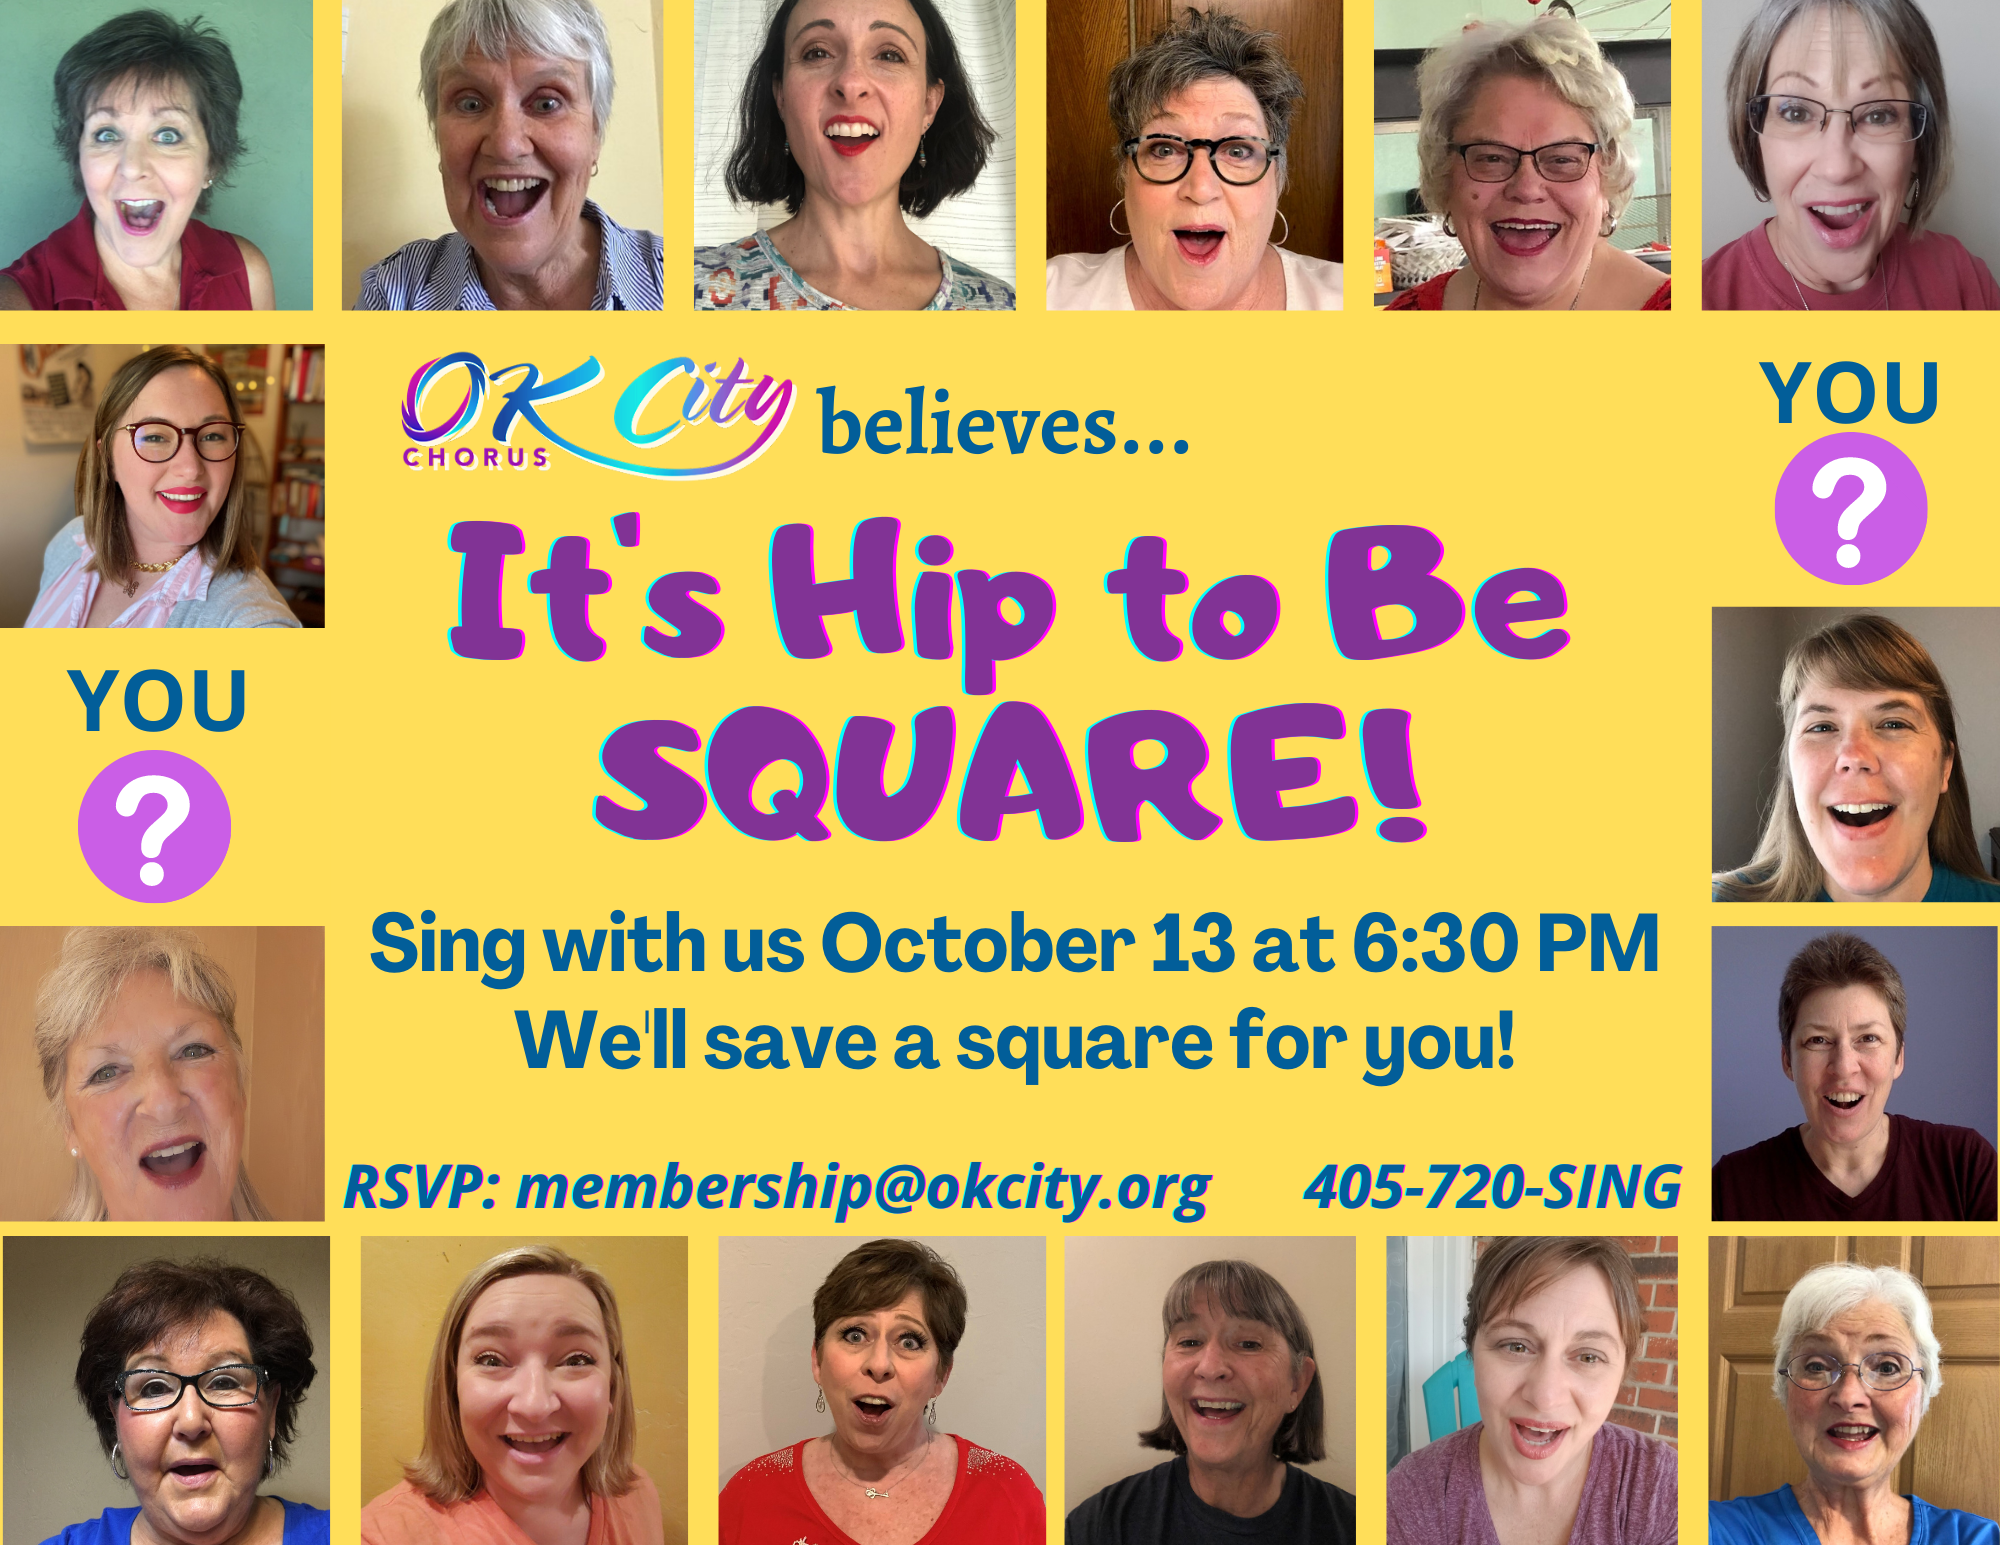 It's Hip to Be Square - OK City Chorus Virtual Open House